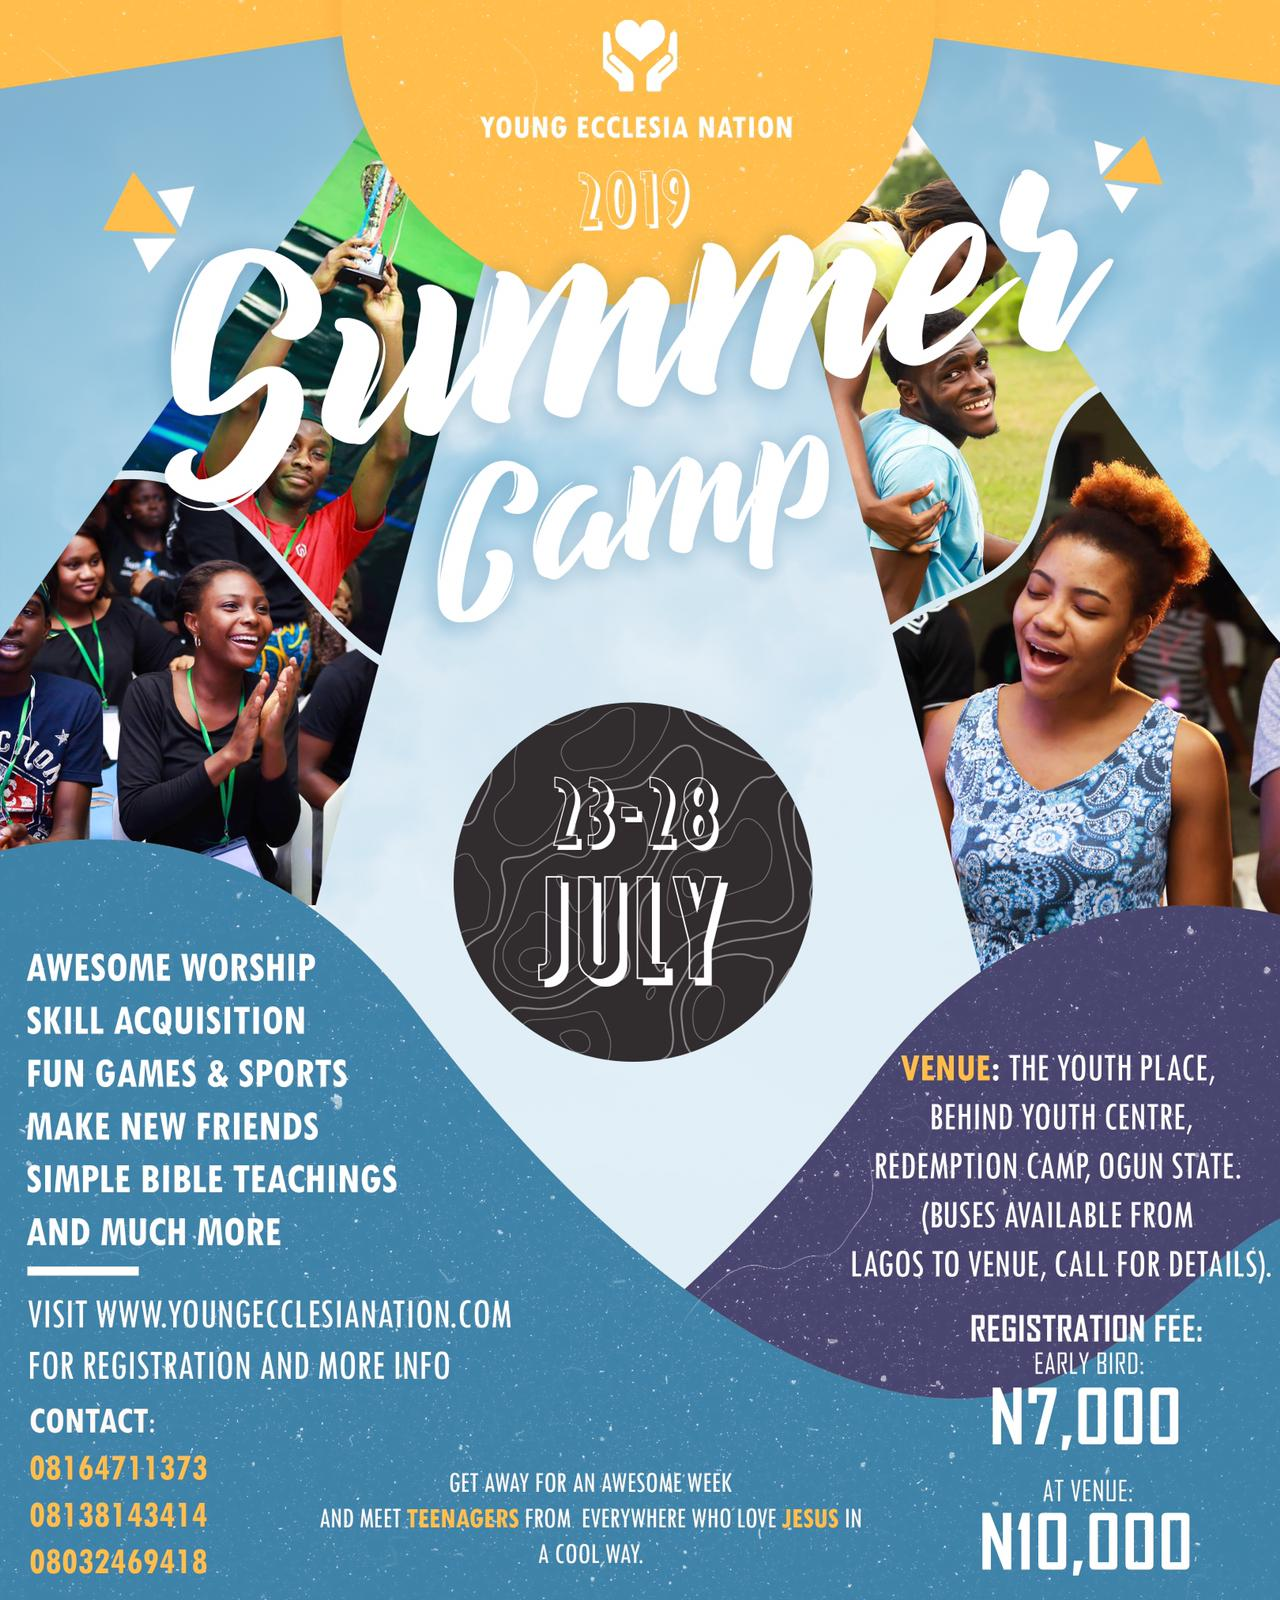 Flier for Young Ecclesia Nation Summer Camp 2019